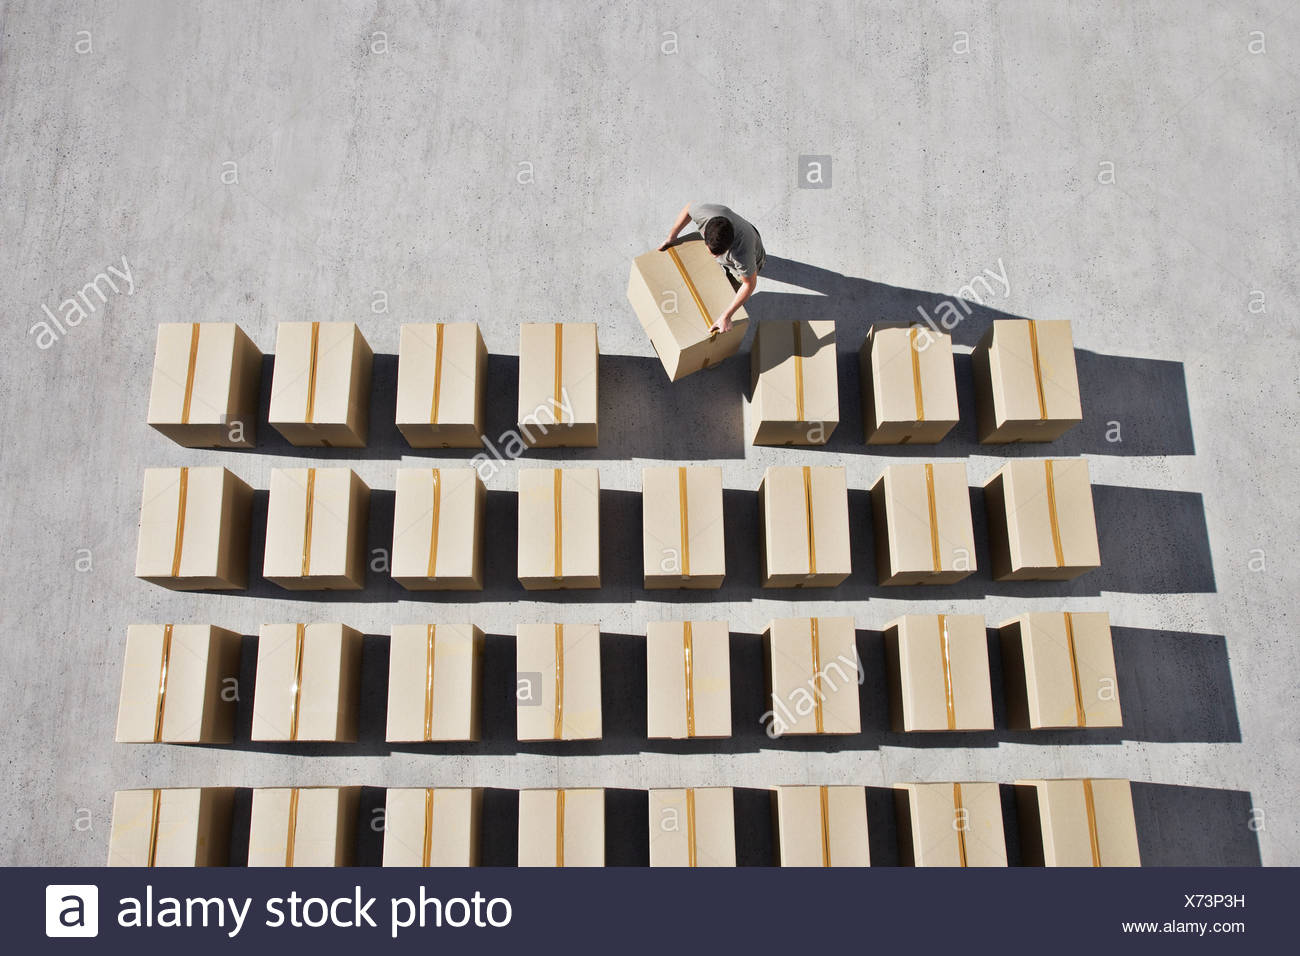 Man placing box into line - Stock Image